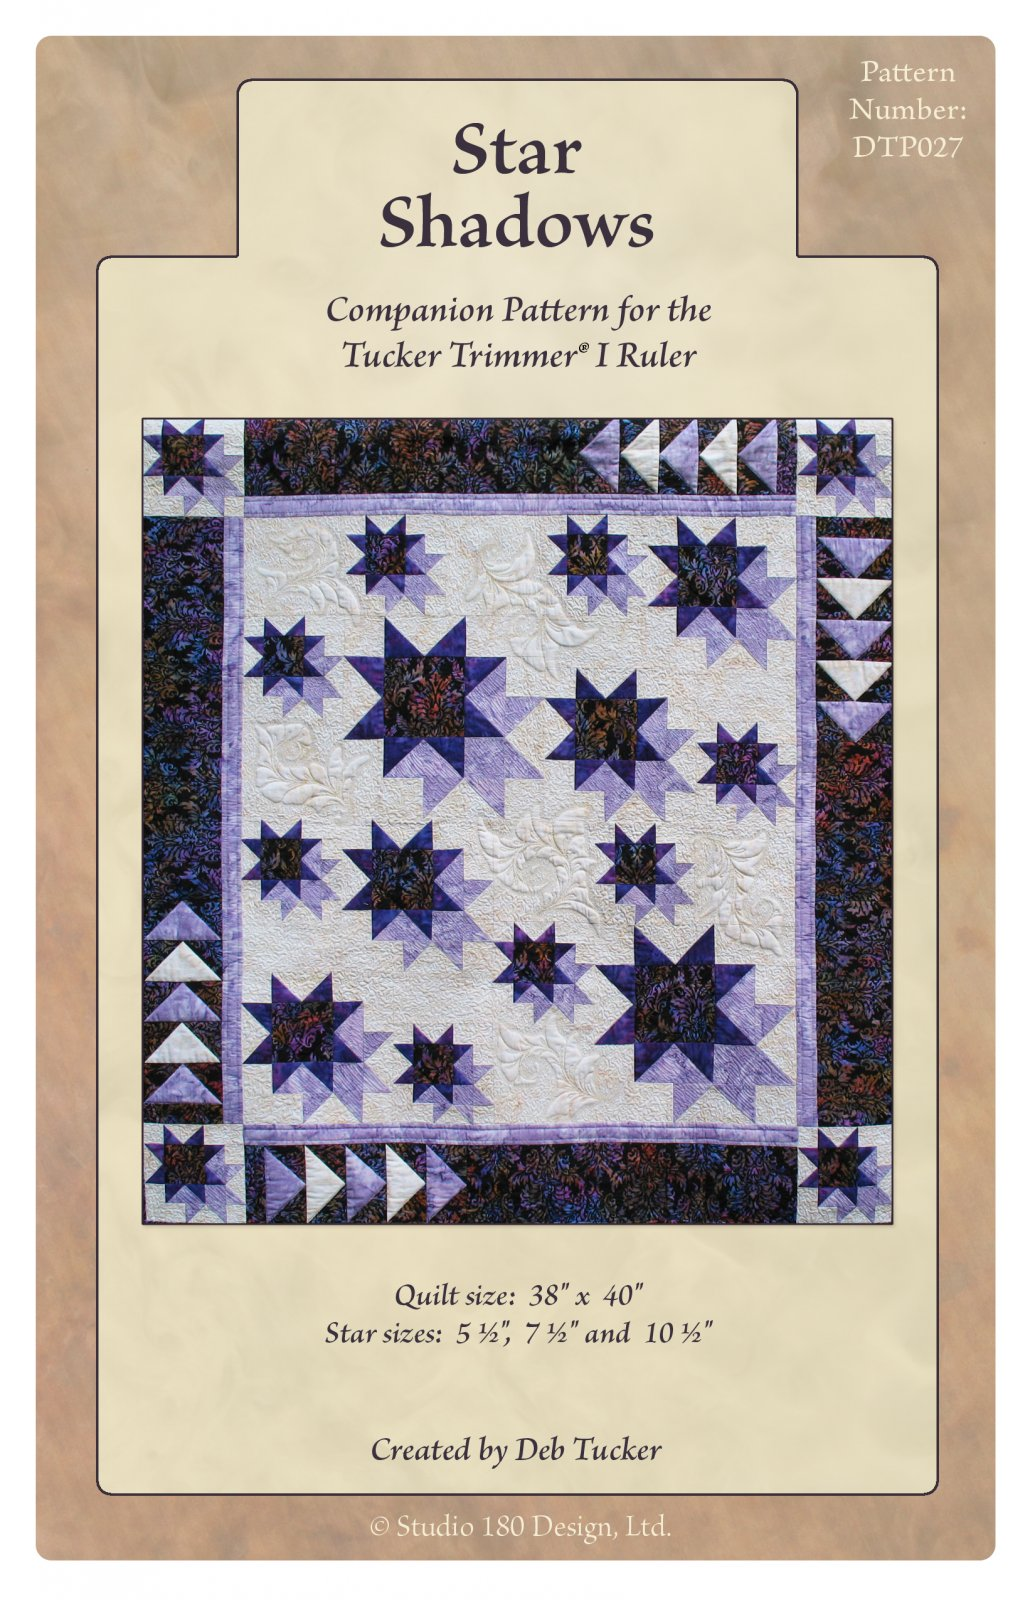 Star Shadows Quilt Pattern - Deb Tucker - Studio 180 Design